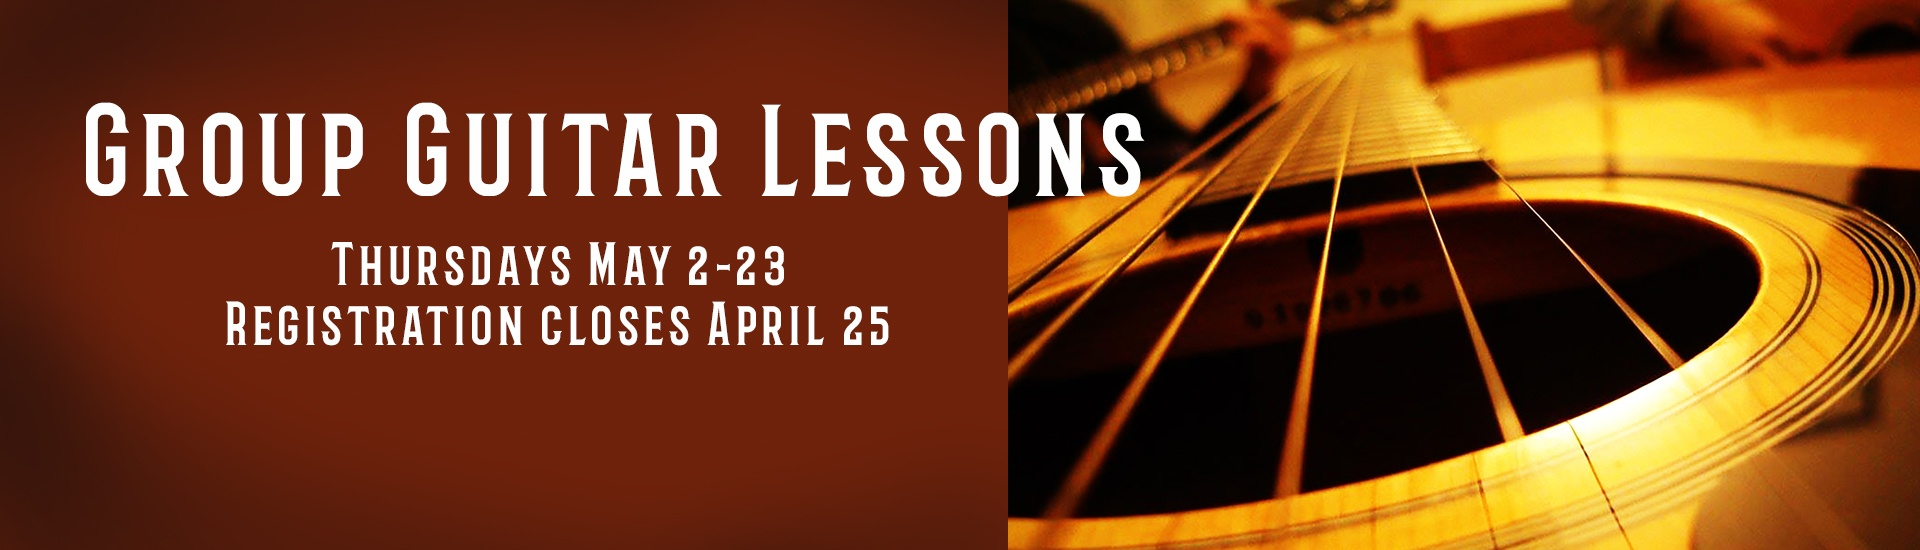 Group guitar lessons for beginners 10-adult